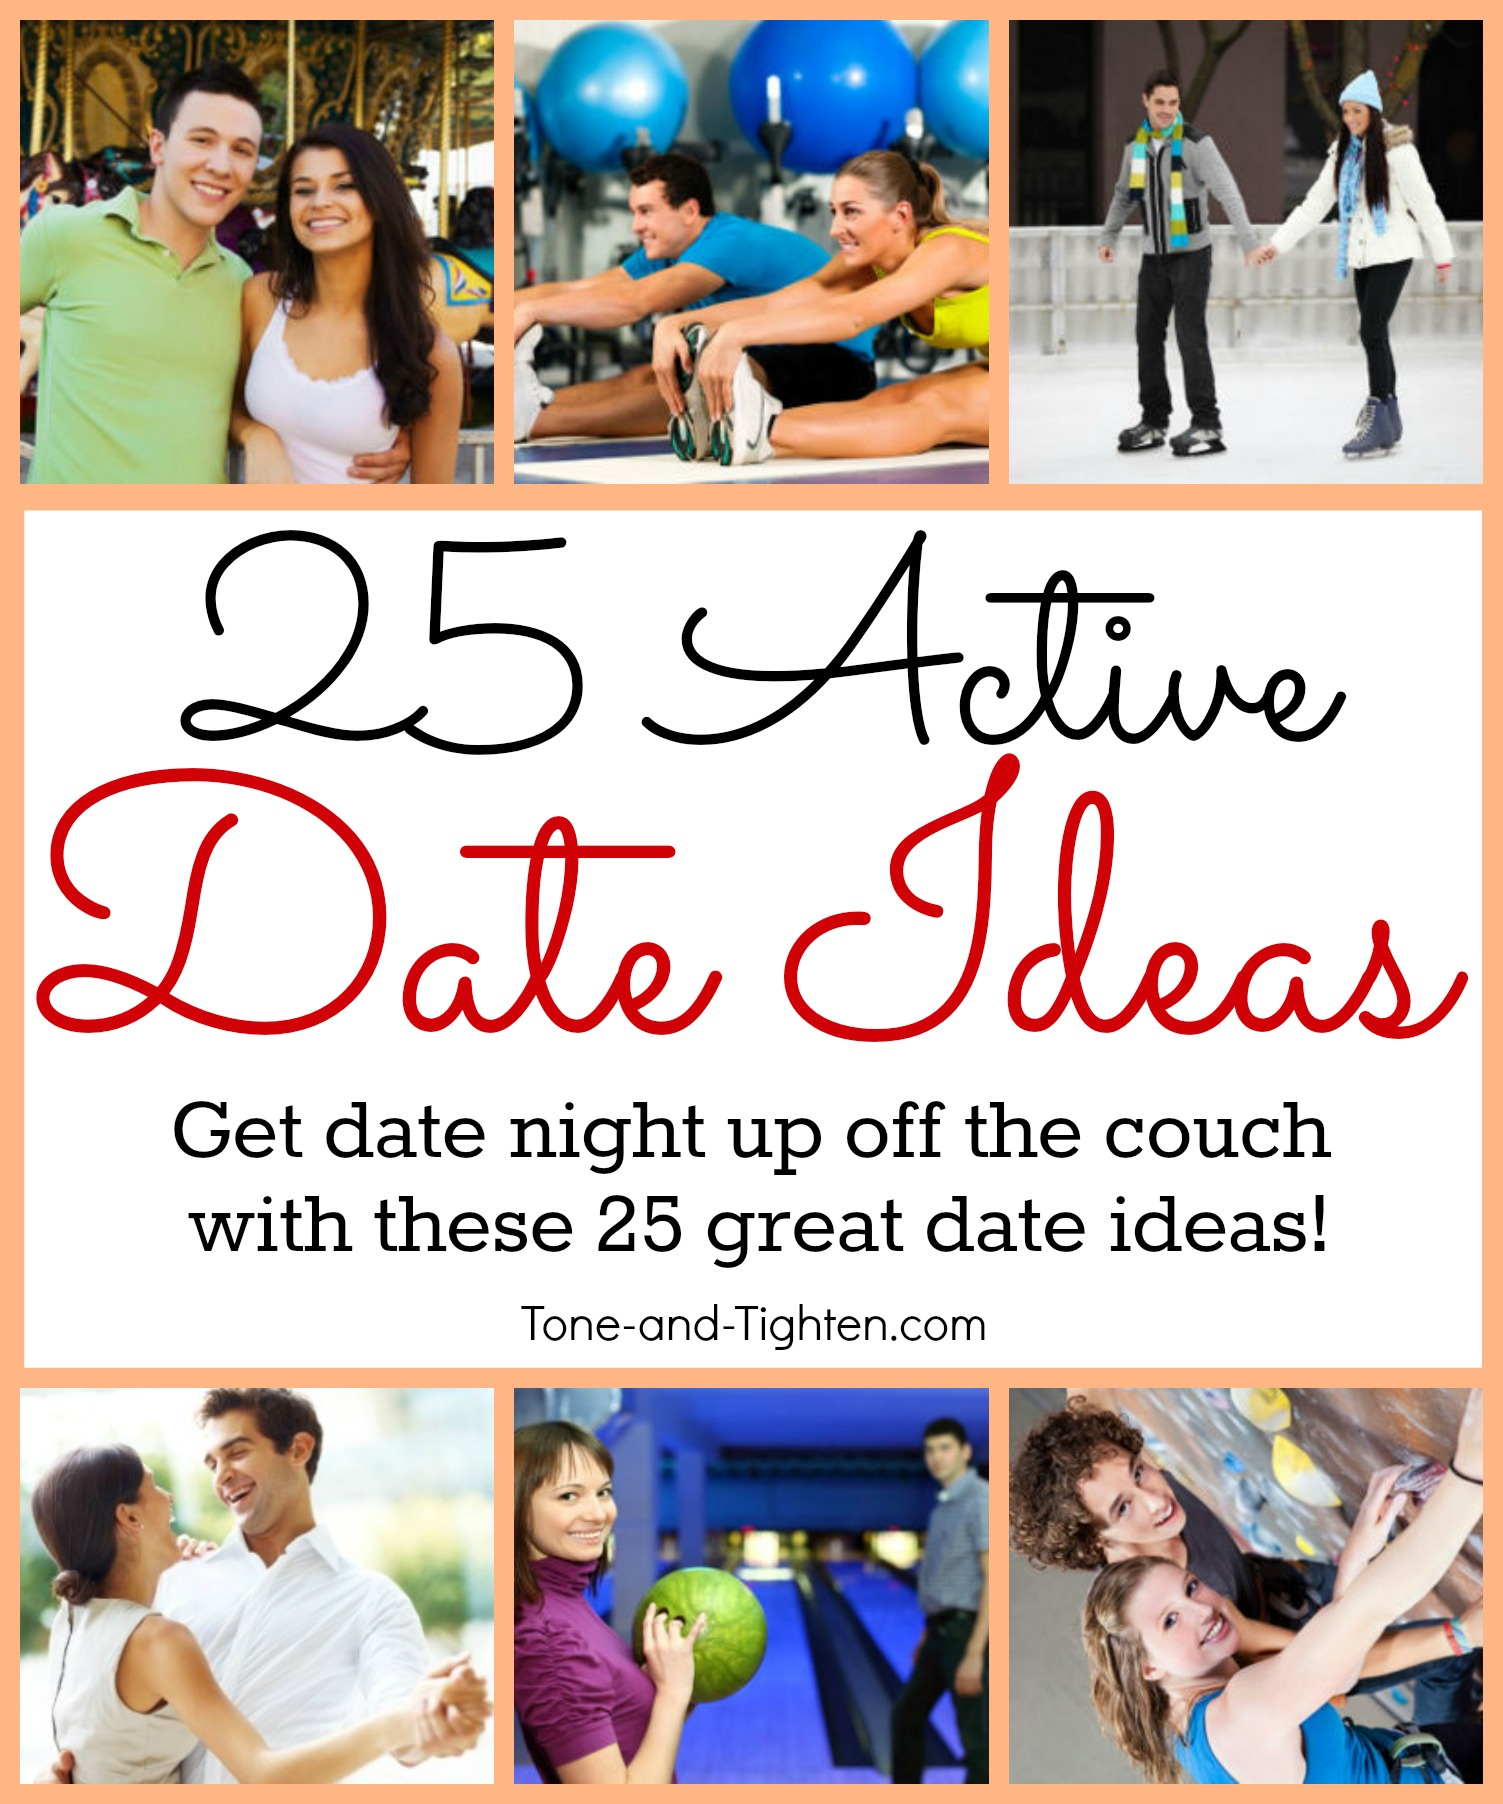 dating ideas and activities